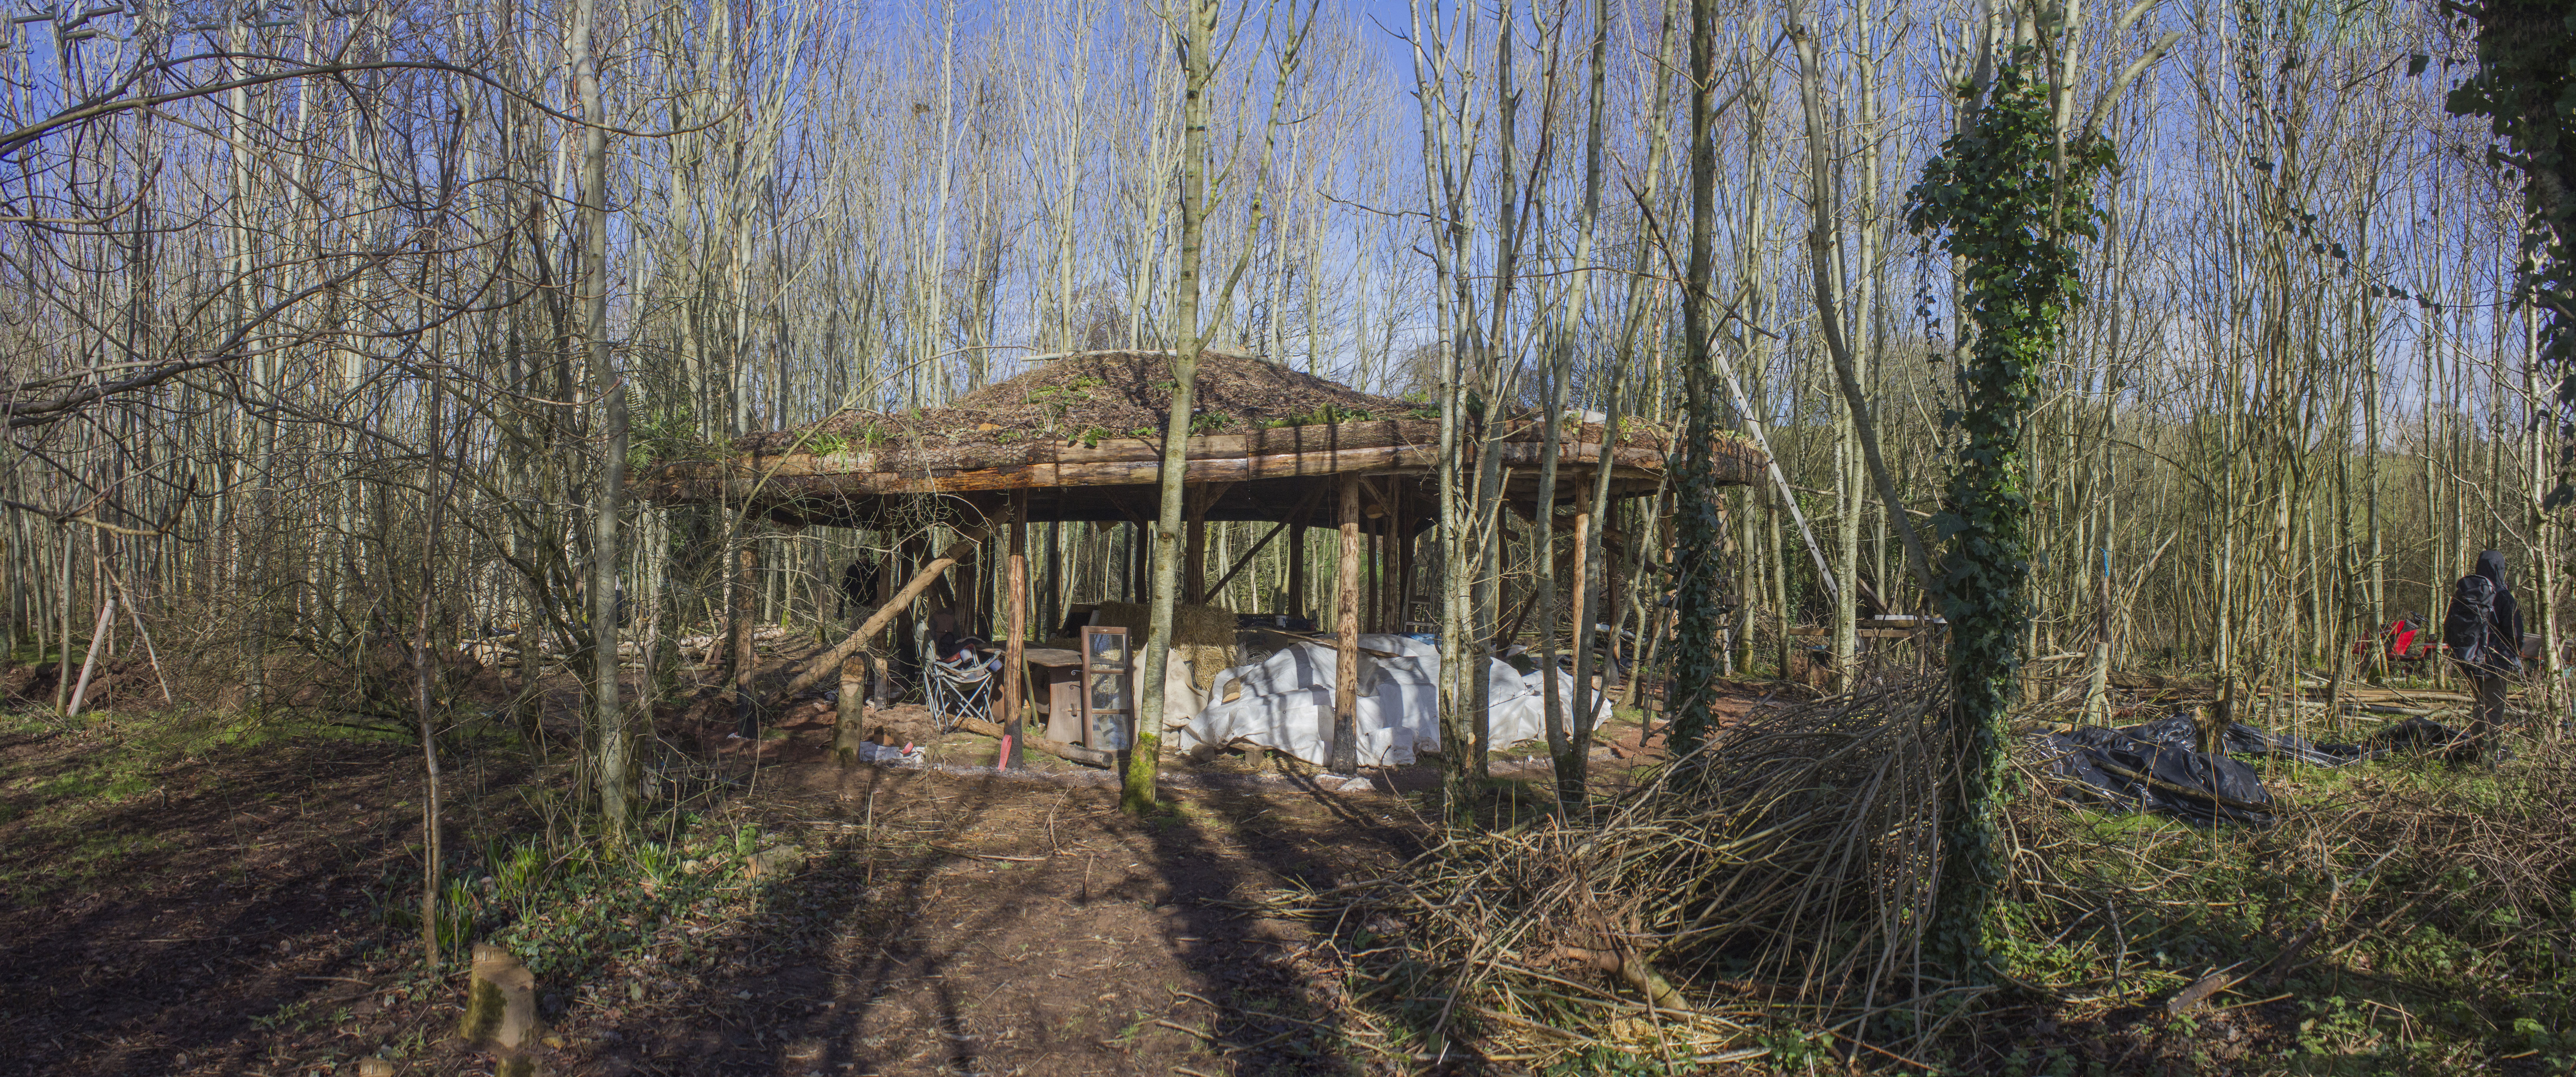 roundhouse-pano-in-the-sun-rawed